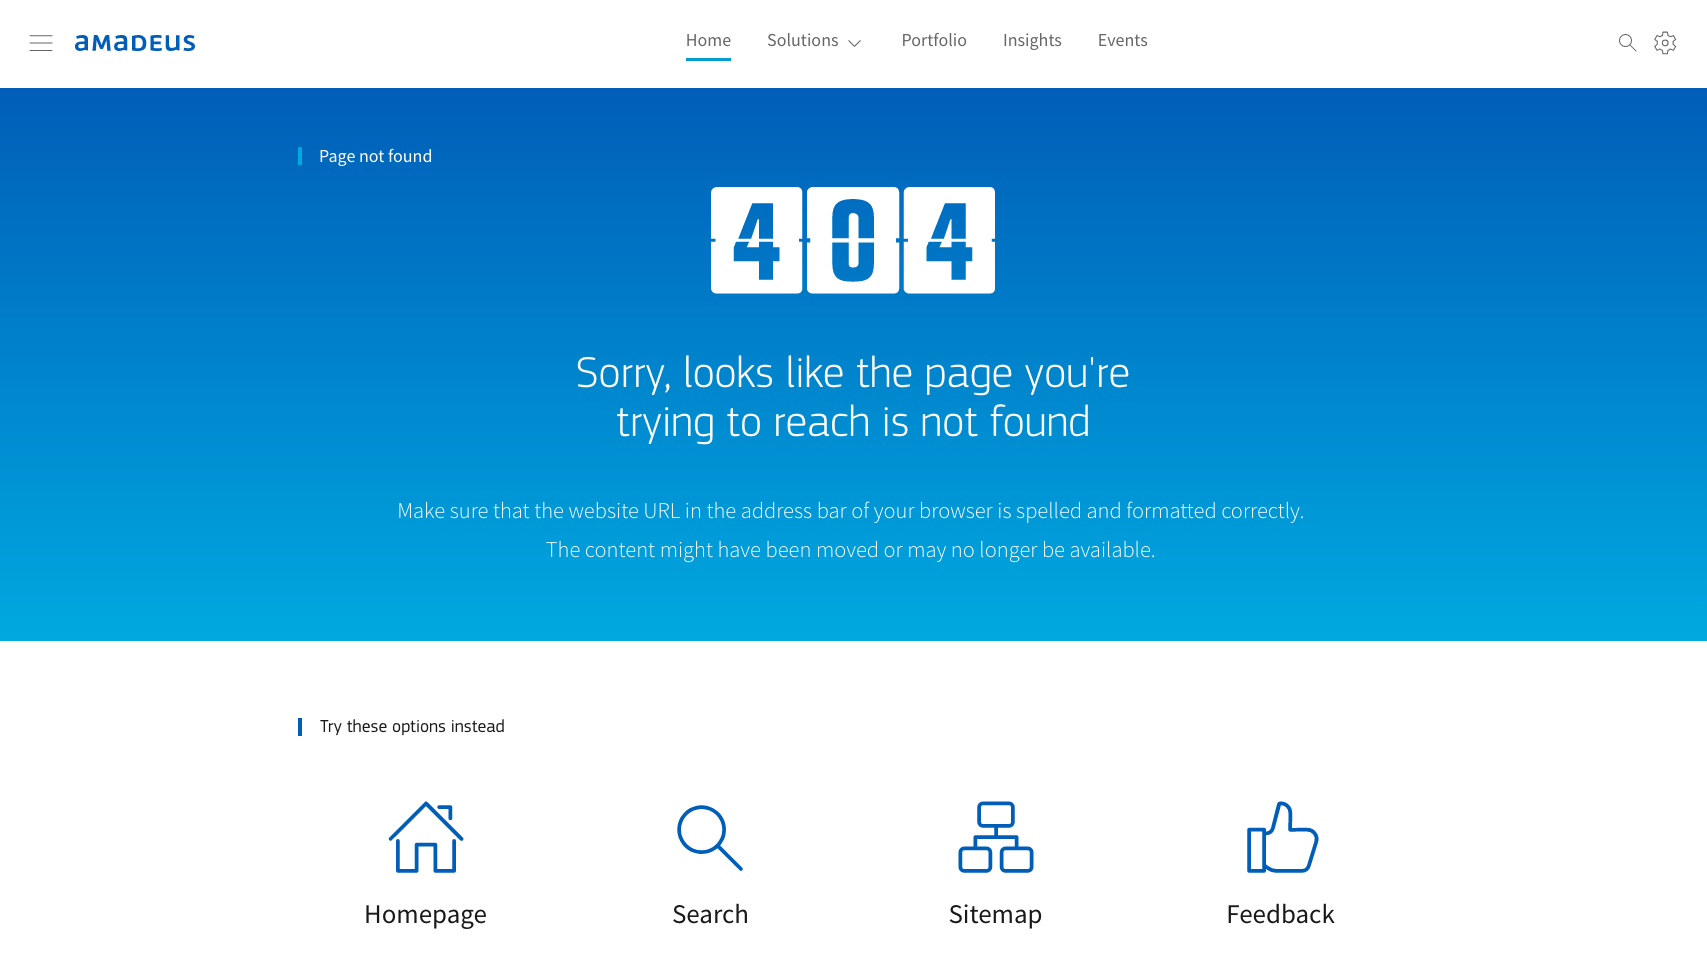 Amadeus IT Group's 404-page with navigation and links to the homepage, search page, sitemap and feedback form.